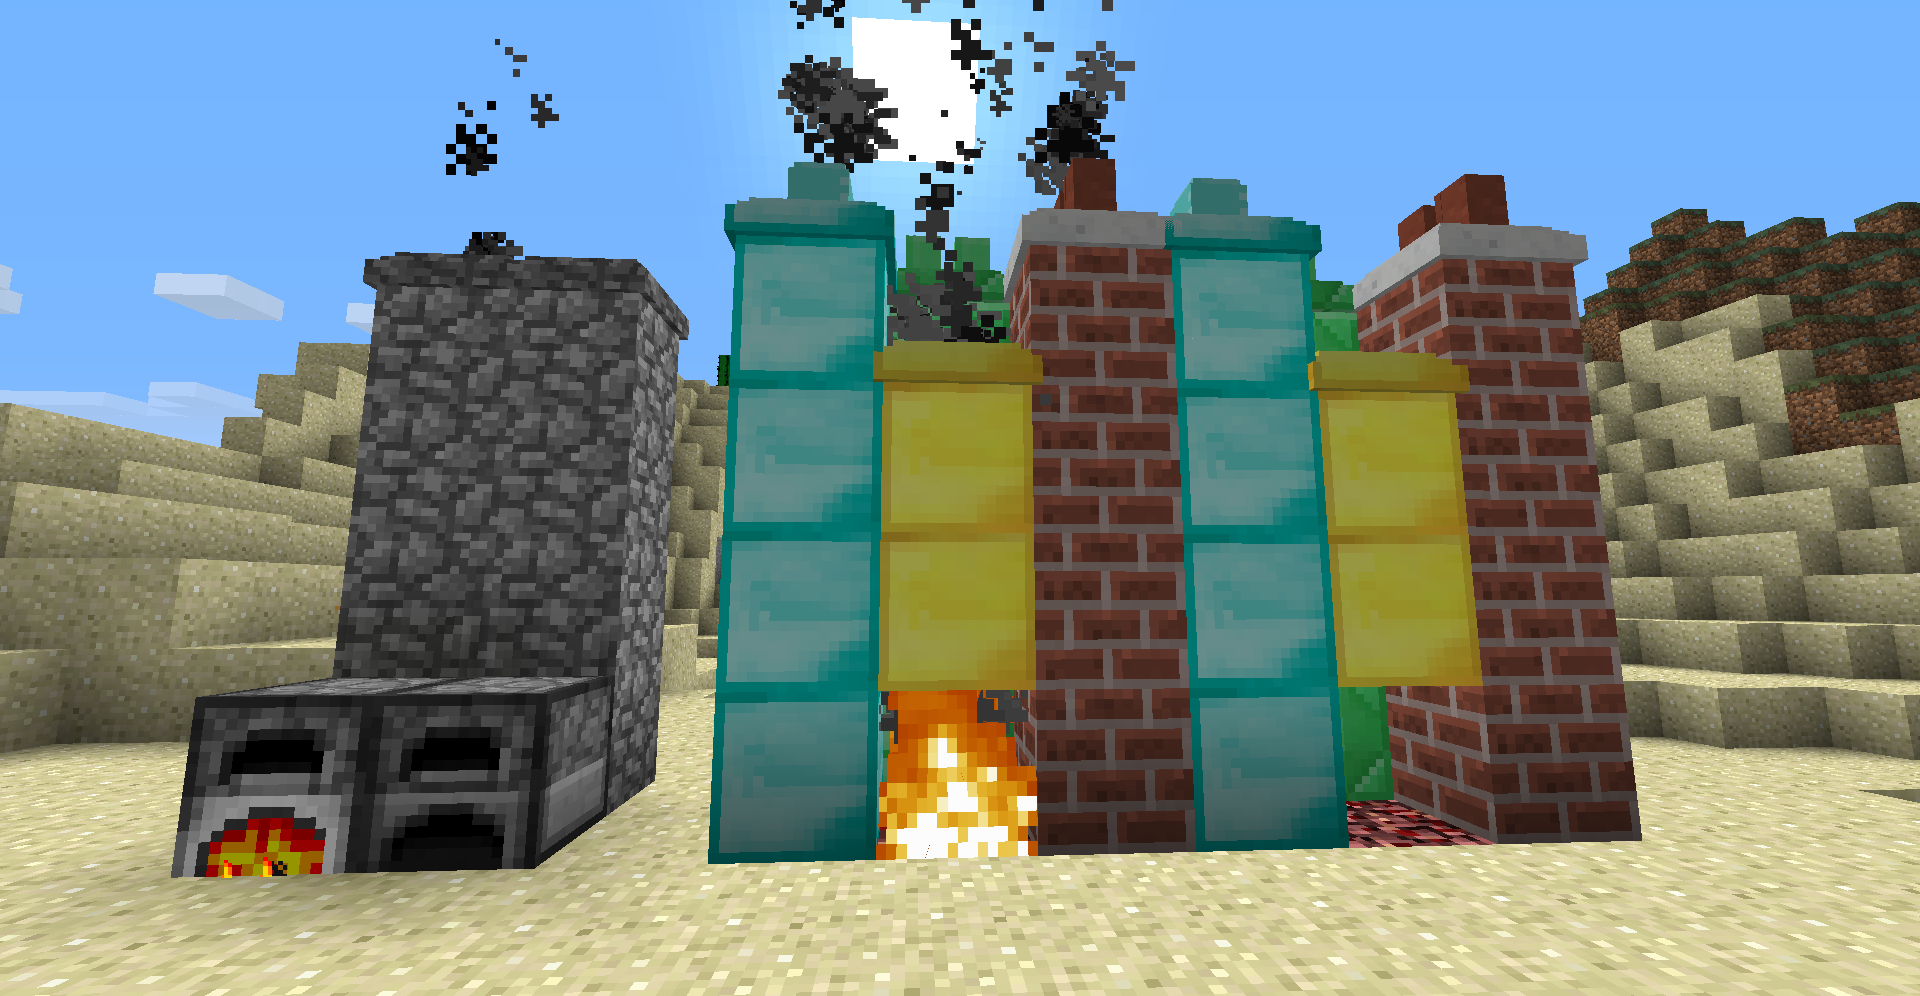 auto-draft-13794-6 Decorative Marble and Decorative Chimneys Mod 1.7.10/1.6.4